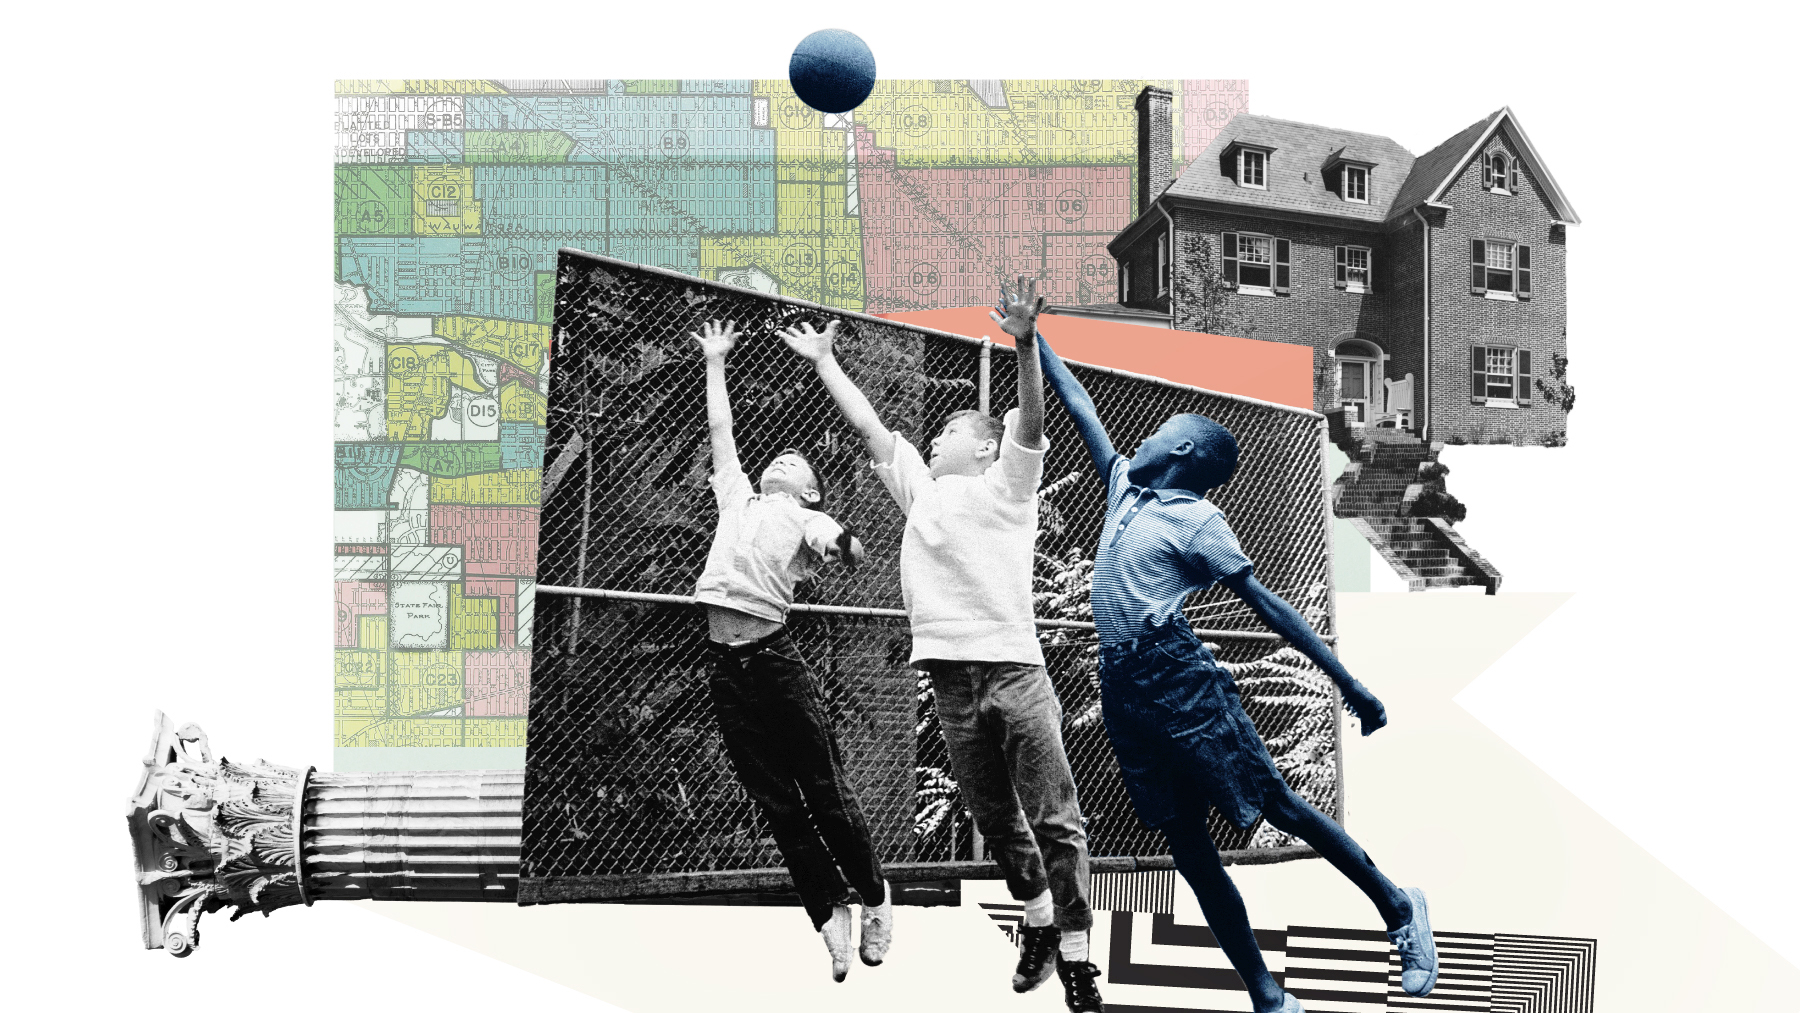 An illustration of white and Black children playing basketball and symbols of housing.